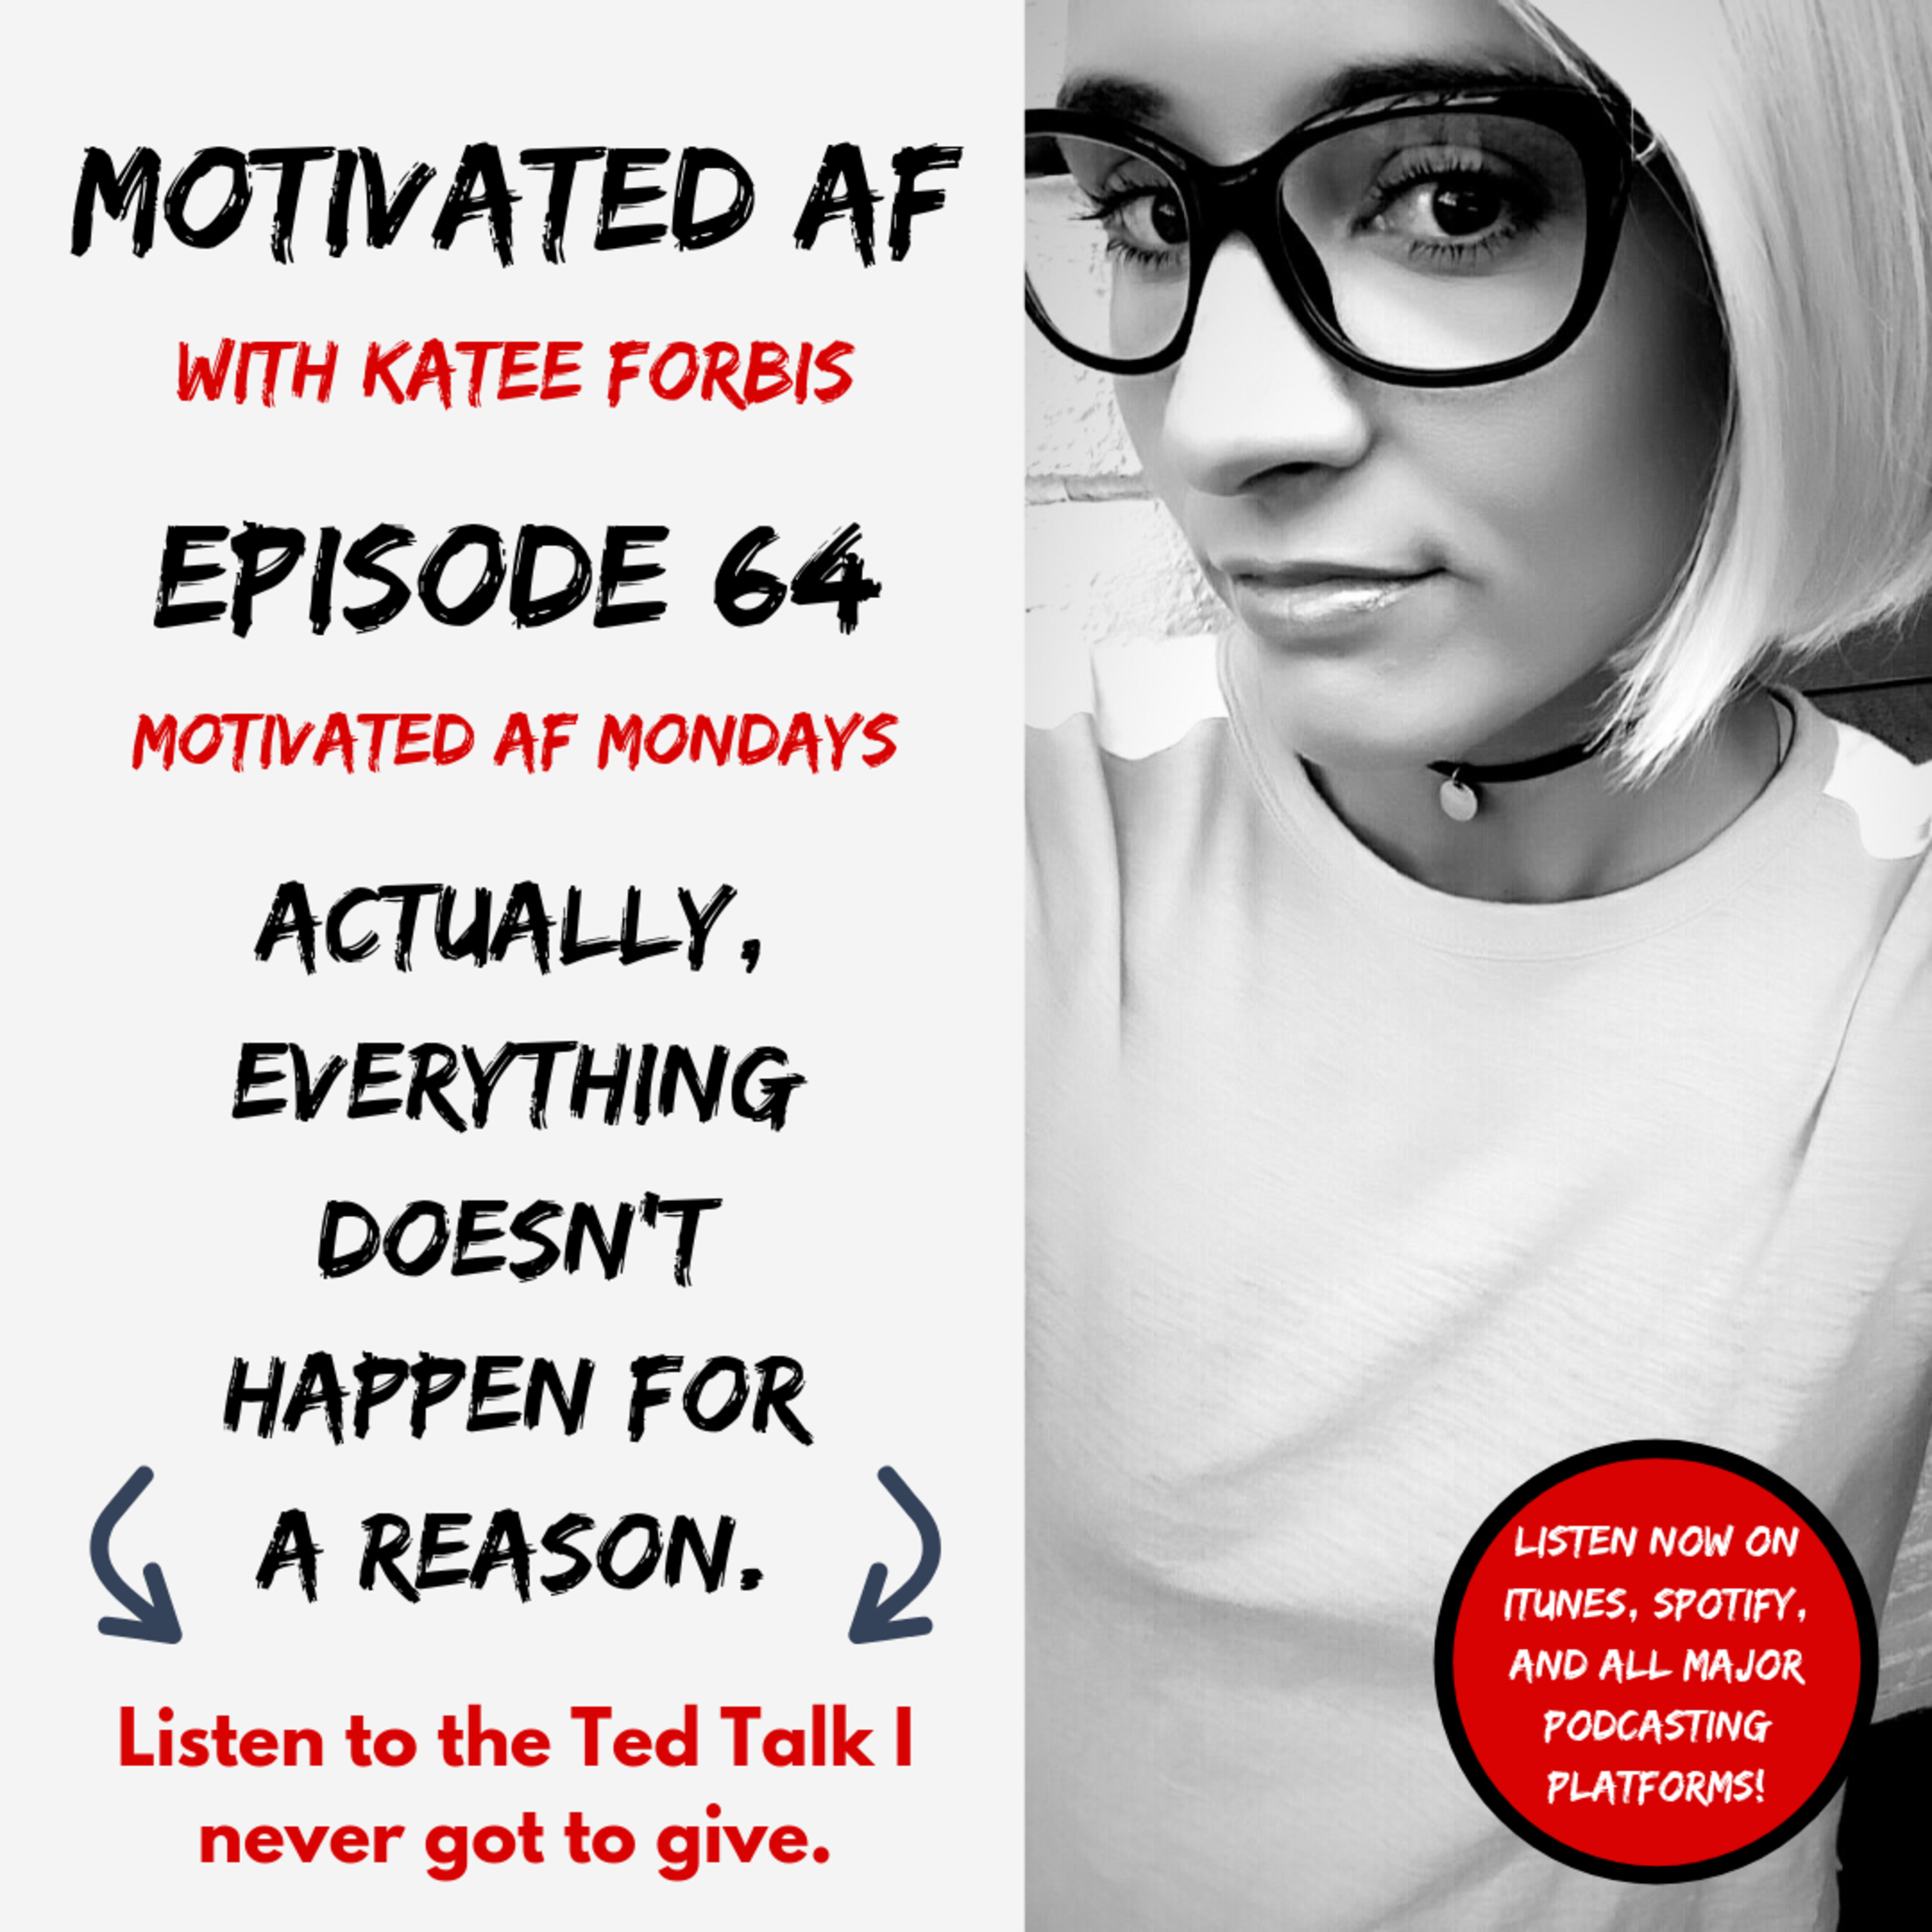 """Ep. 64 - """"Actually, Everything DOESN'T Happen For A Reason"""" aka The Ted Talk I Never Got To Give"""